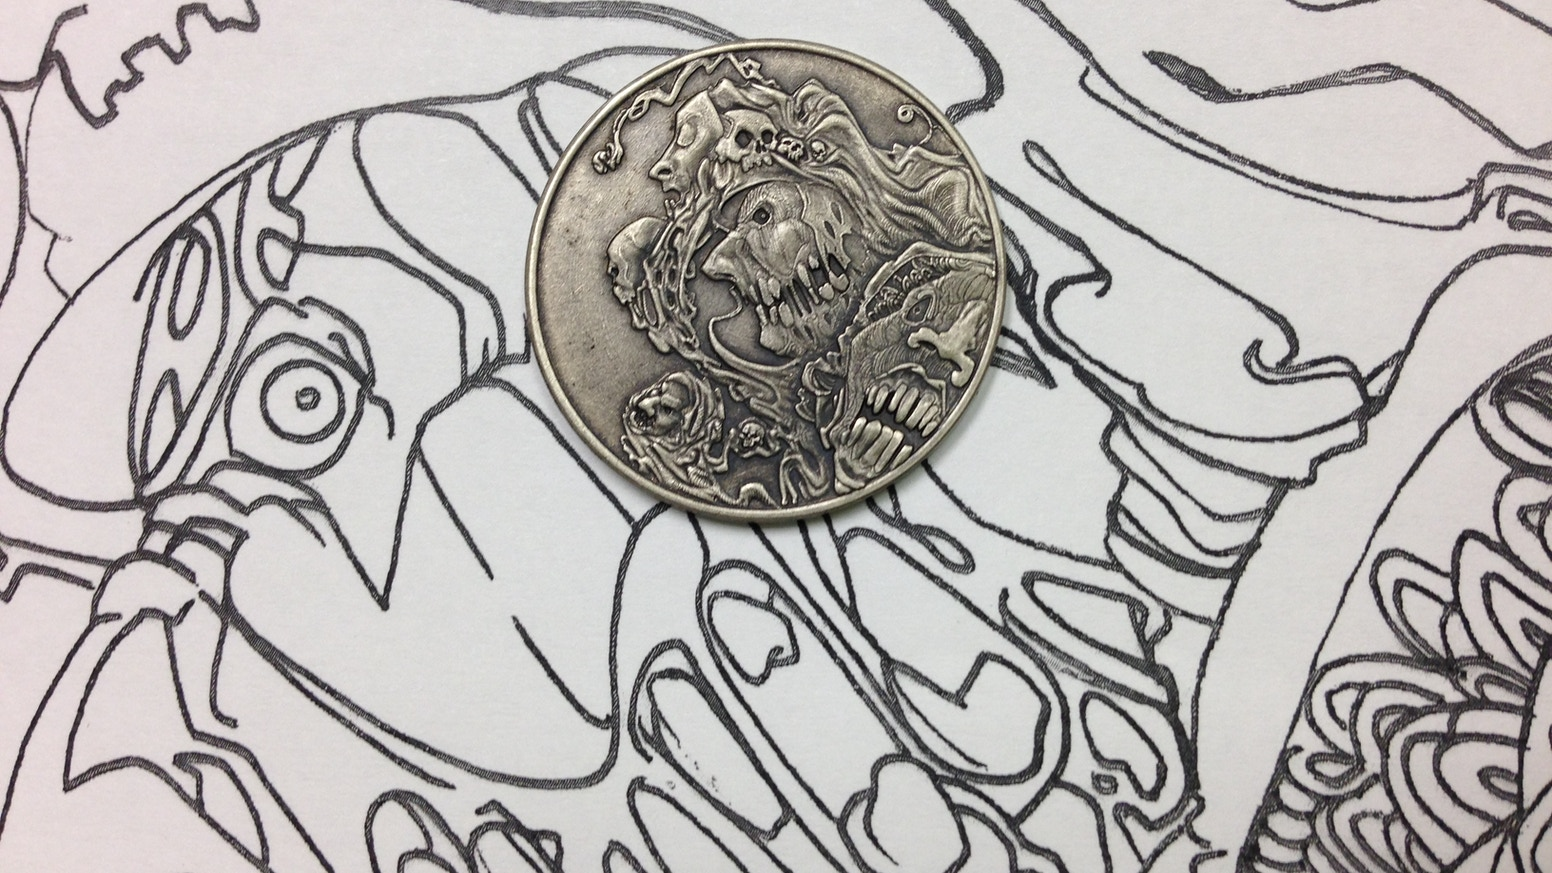 Enhance your board game, tabletop RPG or LARP with realistic fantasy currency, die struck in America's oldest private mint.